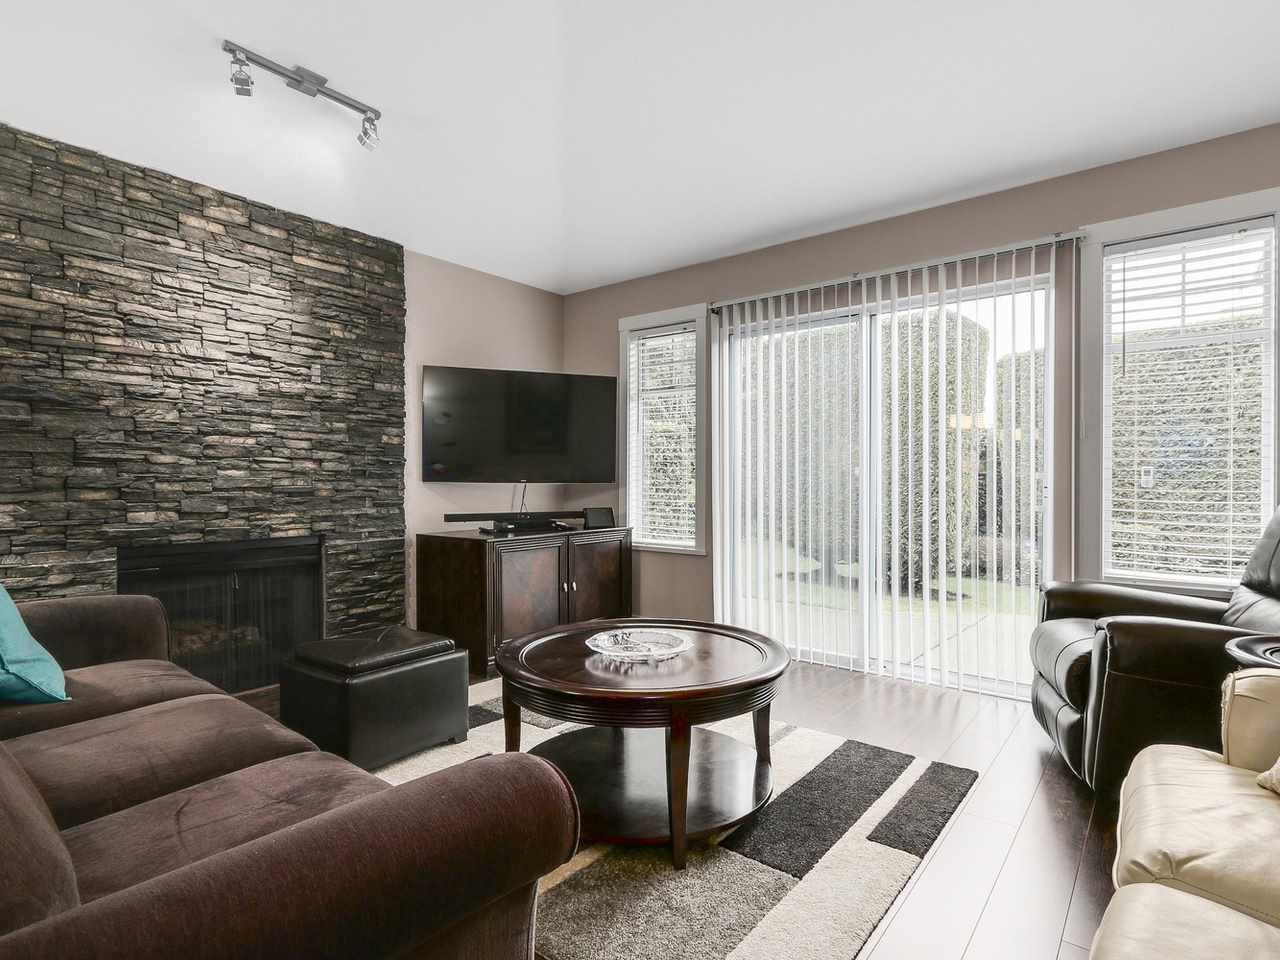 """Photo 2: Photos: 72 9208 208 Street in Langley: Walnut Grove Townhouse for sale in """"CHURCHILL PARK"""" : MLS®# R2155500"""